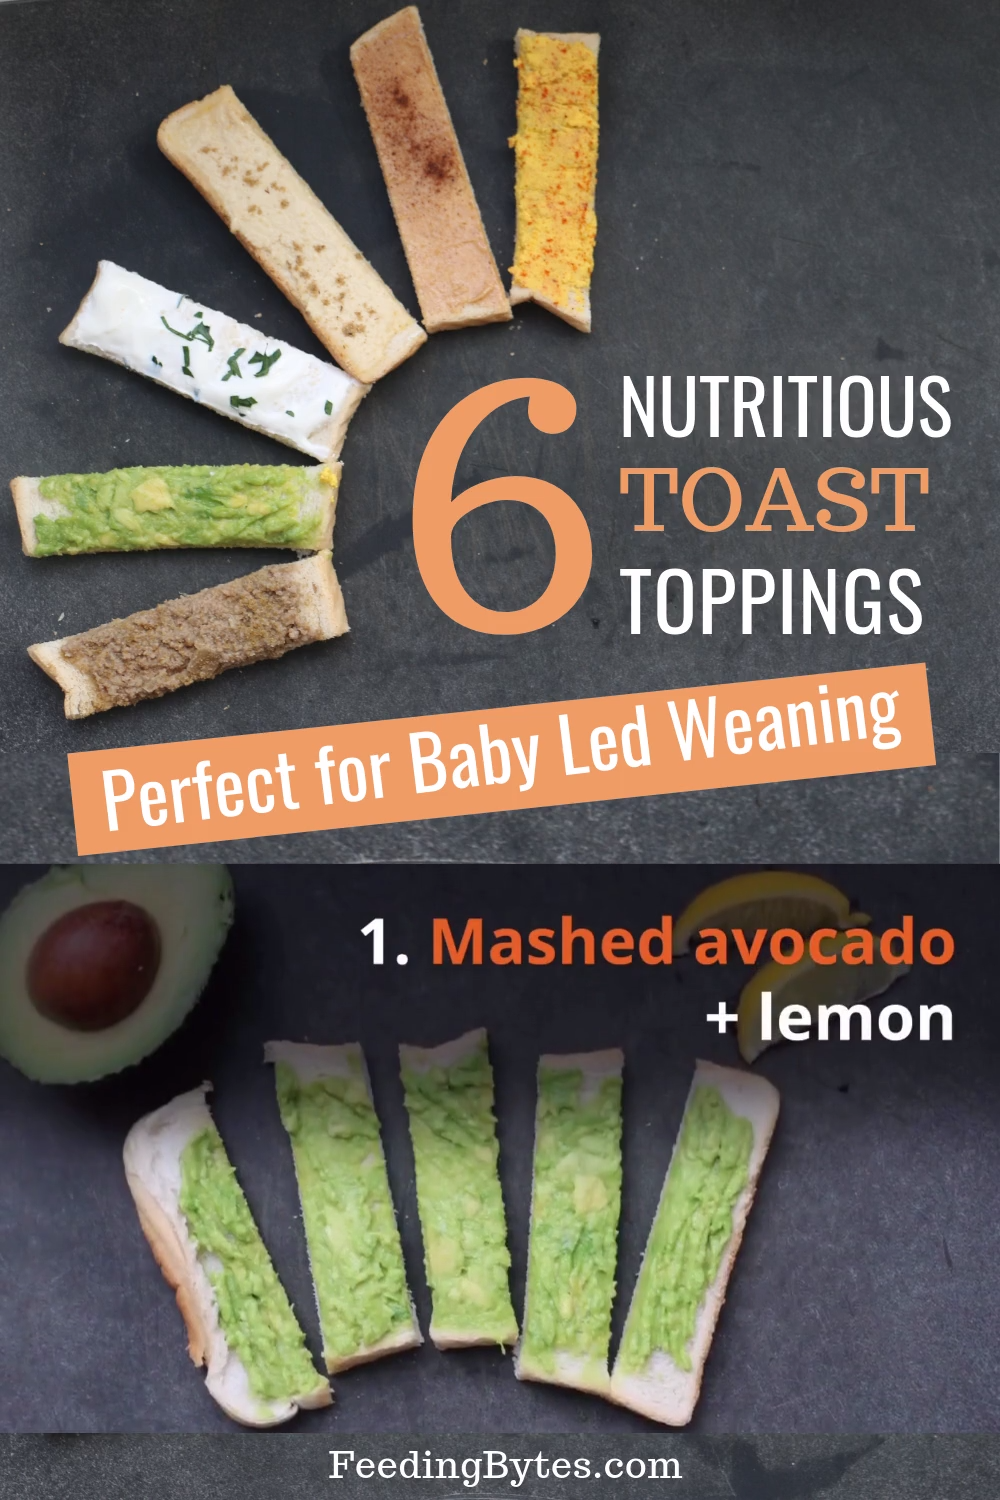 6 Nutritious baby toast topping ideas for the perfect finger food. These toast baby finger food ideas are great for starting solids and baby led weaning while introducing your baby to new tastes. Feeding Bytes #babyfingerfood #babyfood #babyledweaning #babyfoodrecipes #startingsolids #healthybabyfood #startingsolidfoodsforbaby